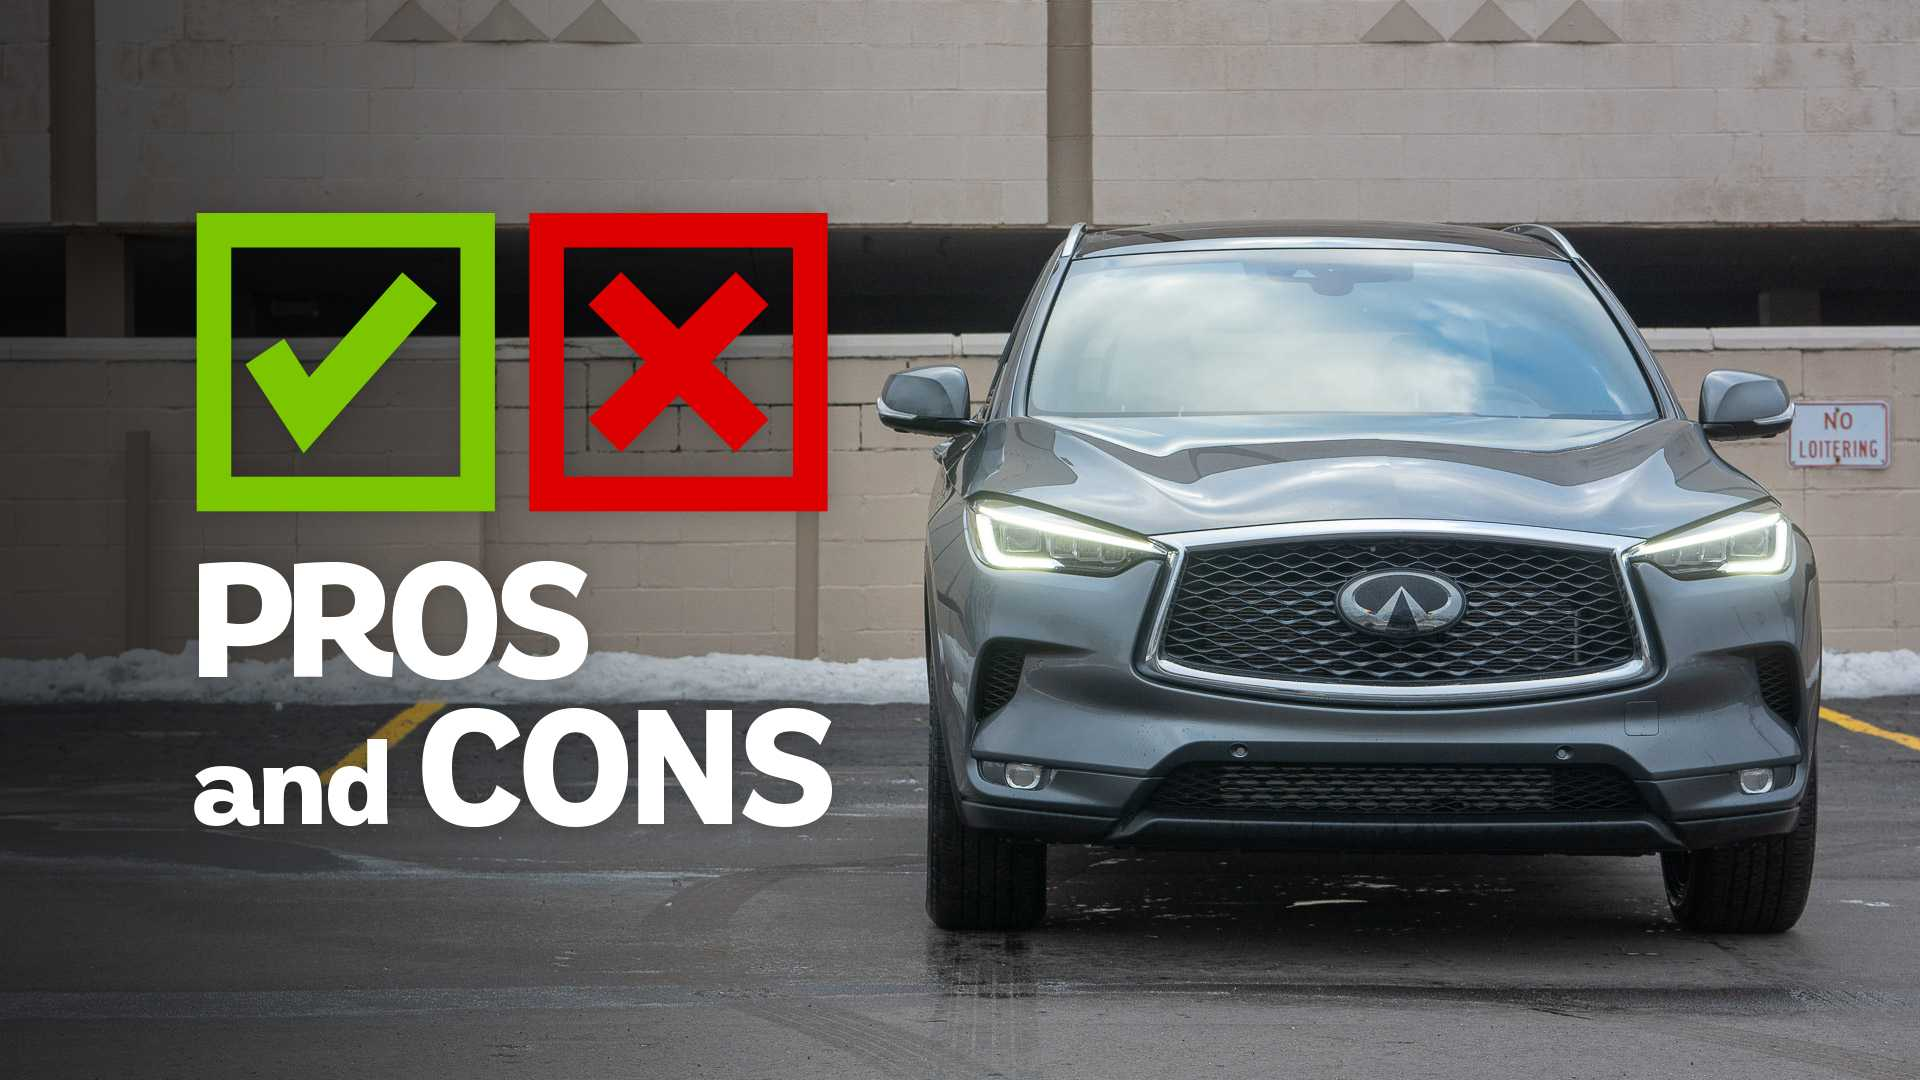 2019 Infiniti QX50: News, Specs, MPG, Price >> 2019 Infiniti Qx50 Essential Awd Pros And Cons